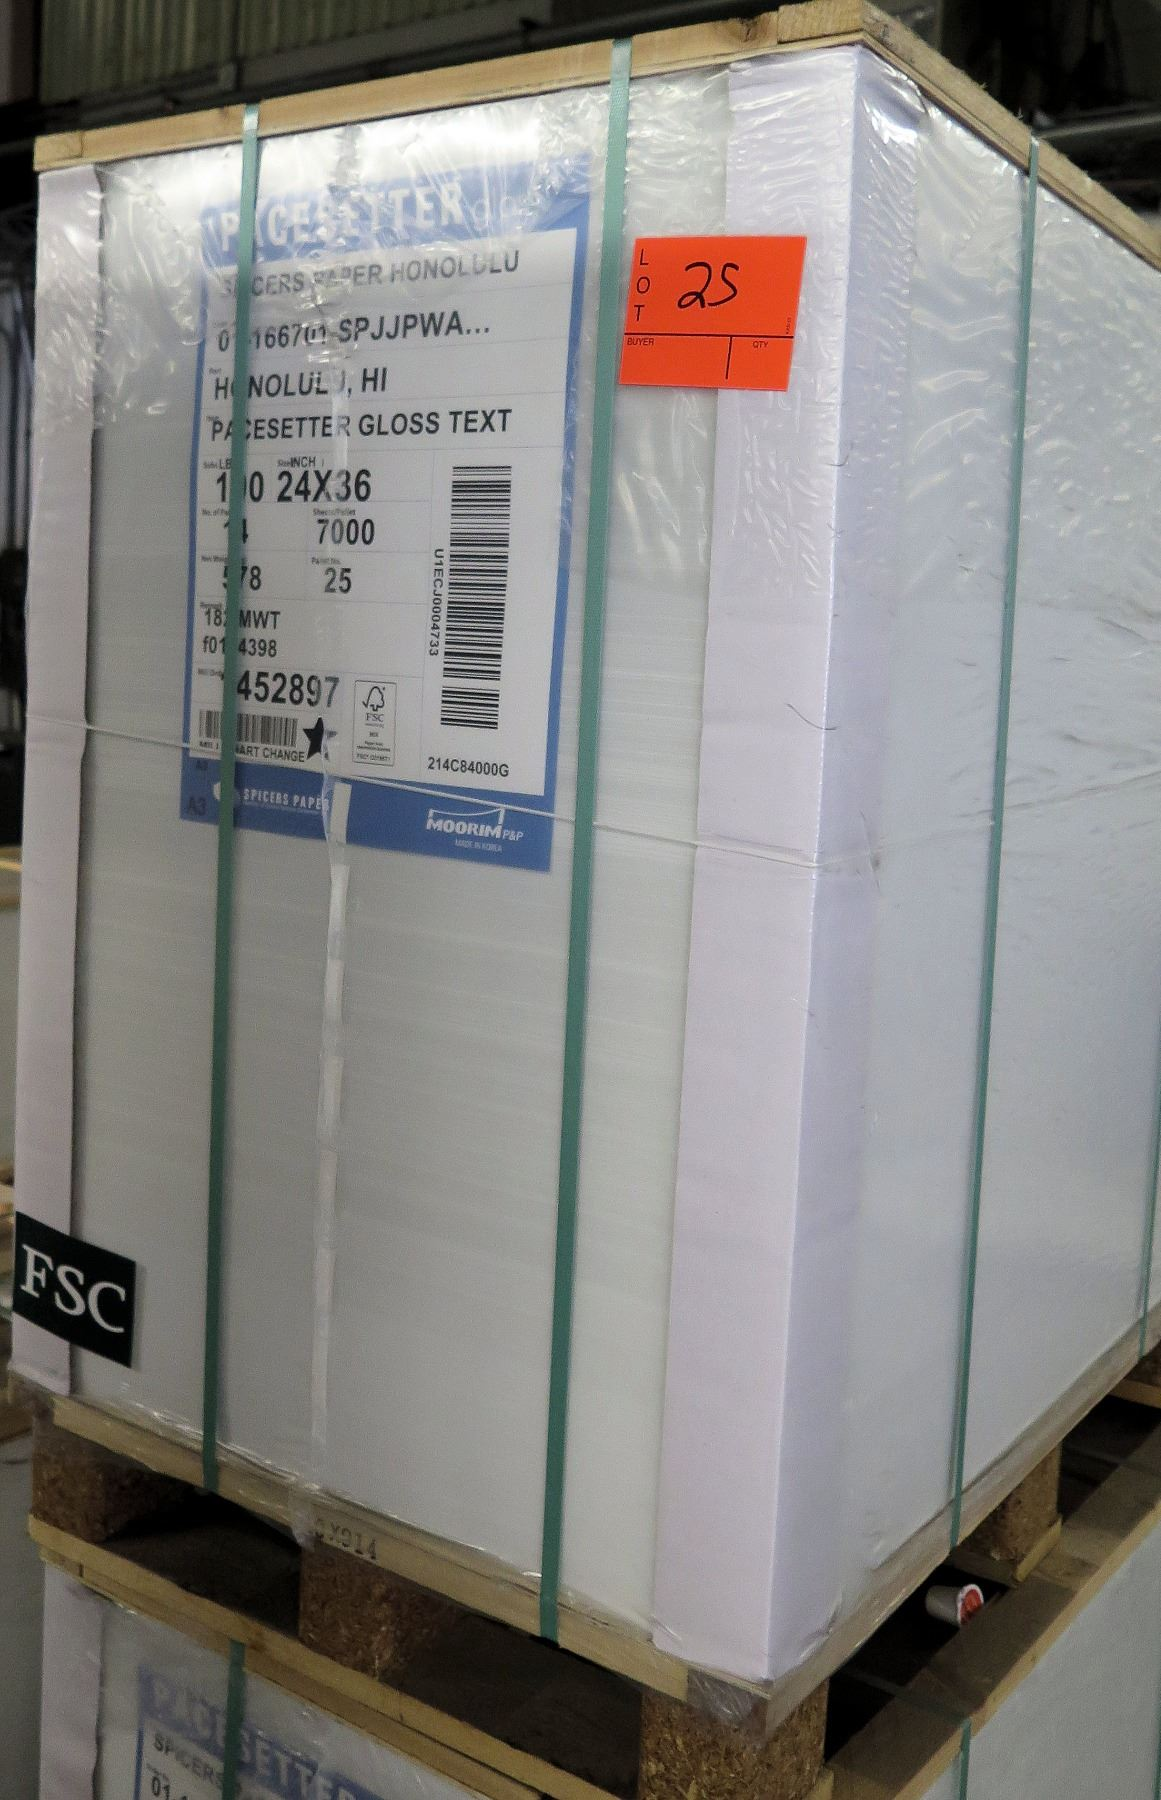 Qty 1 Pallet Pacesetter 24 x 36 Gloss Text Paper 7000 Sheets - Oahu